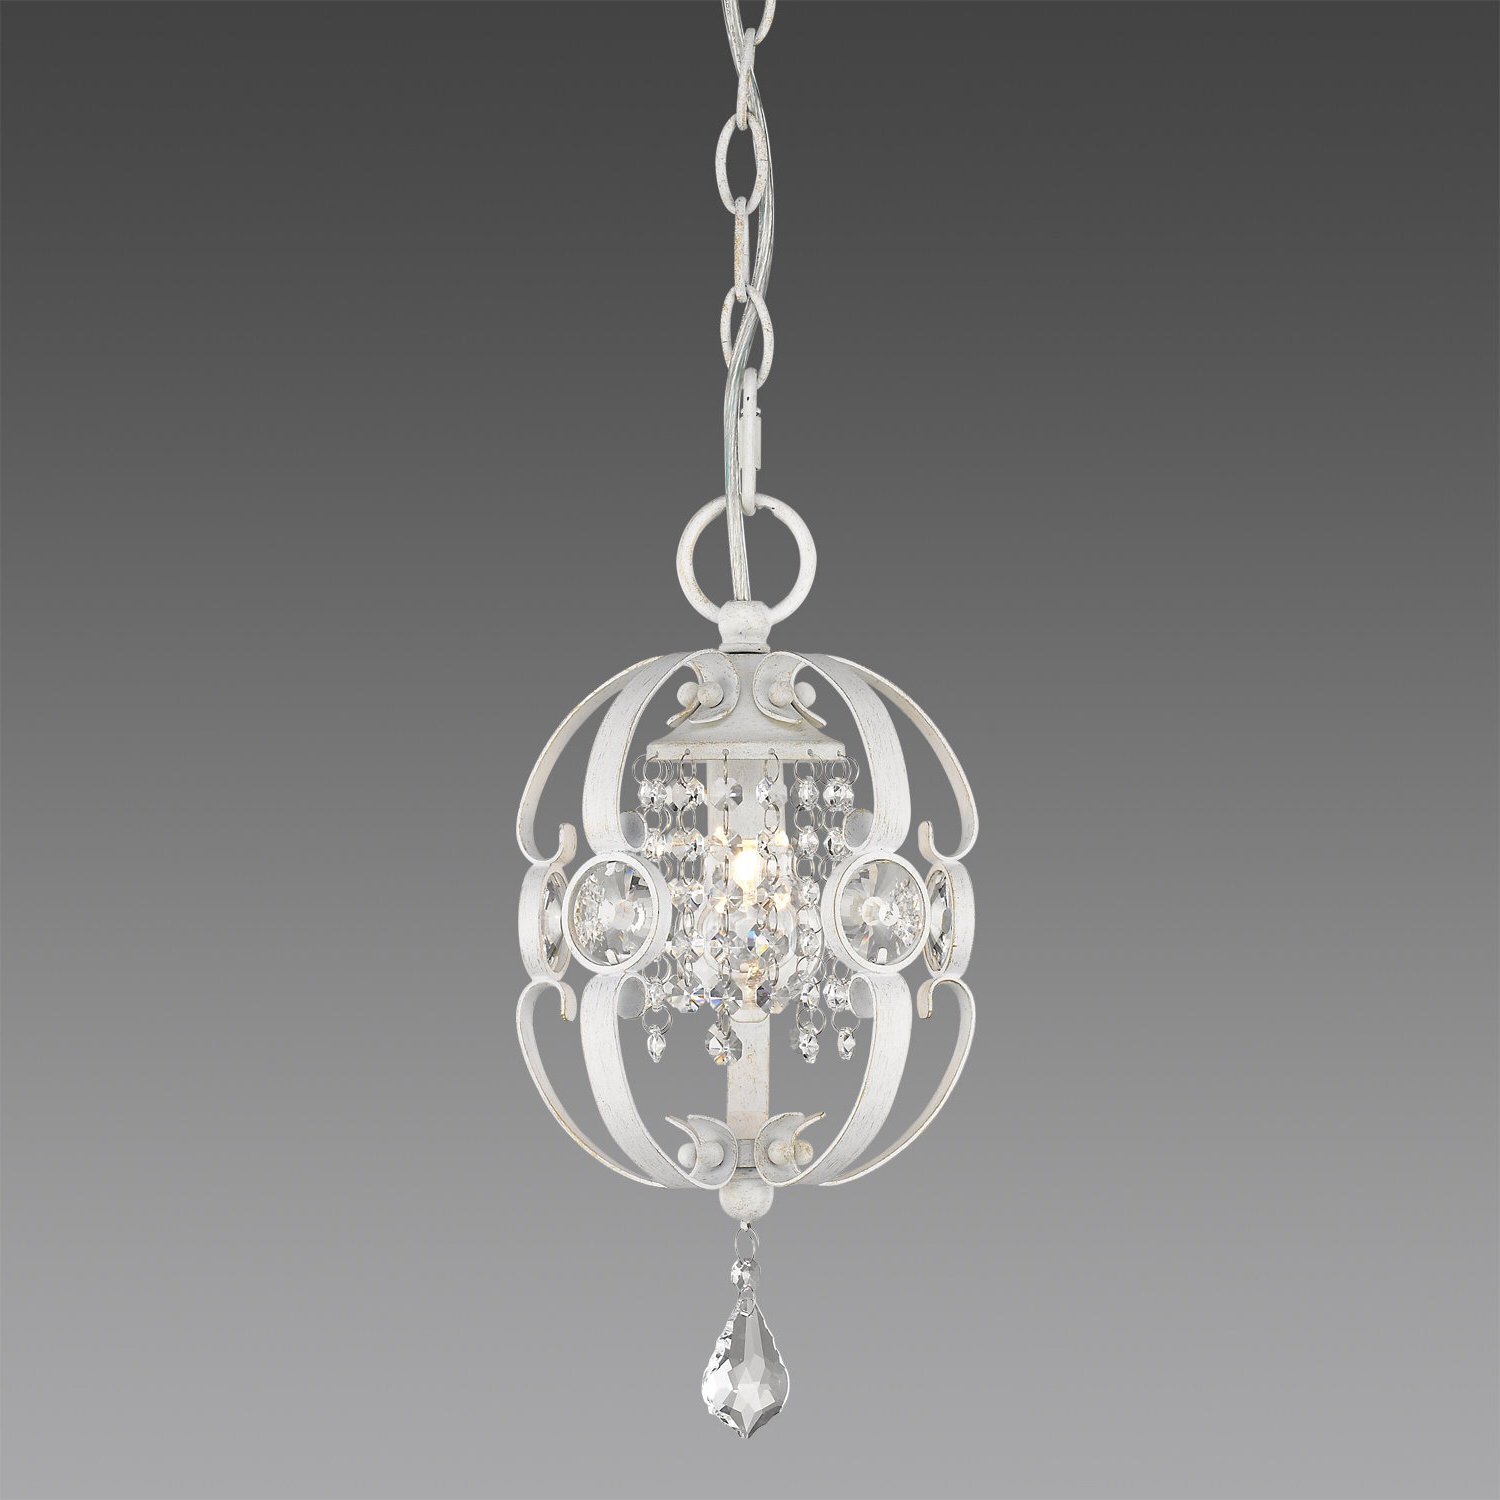 Hardouin 1 Light Single Geometric Pendant Within Most Recently Released Dilley 1 Light Unique / Statement Geometric Pendants (View 9 of 20)